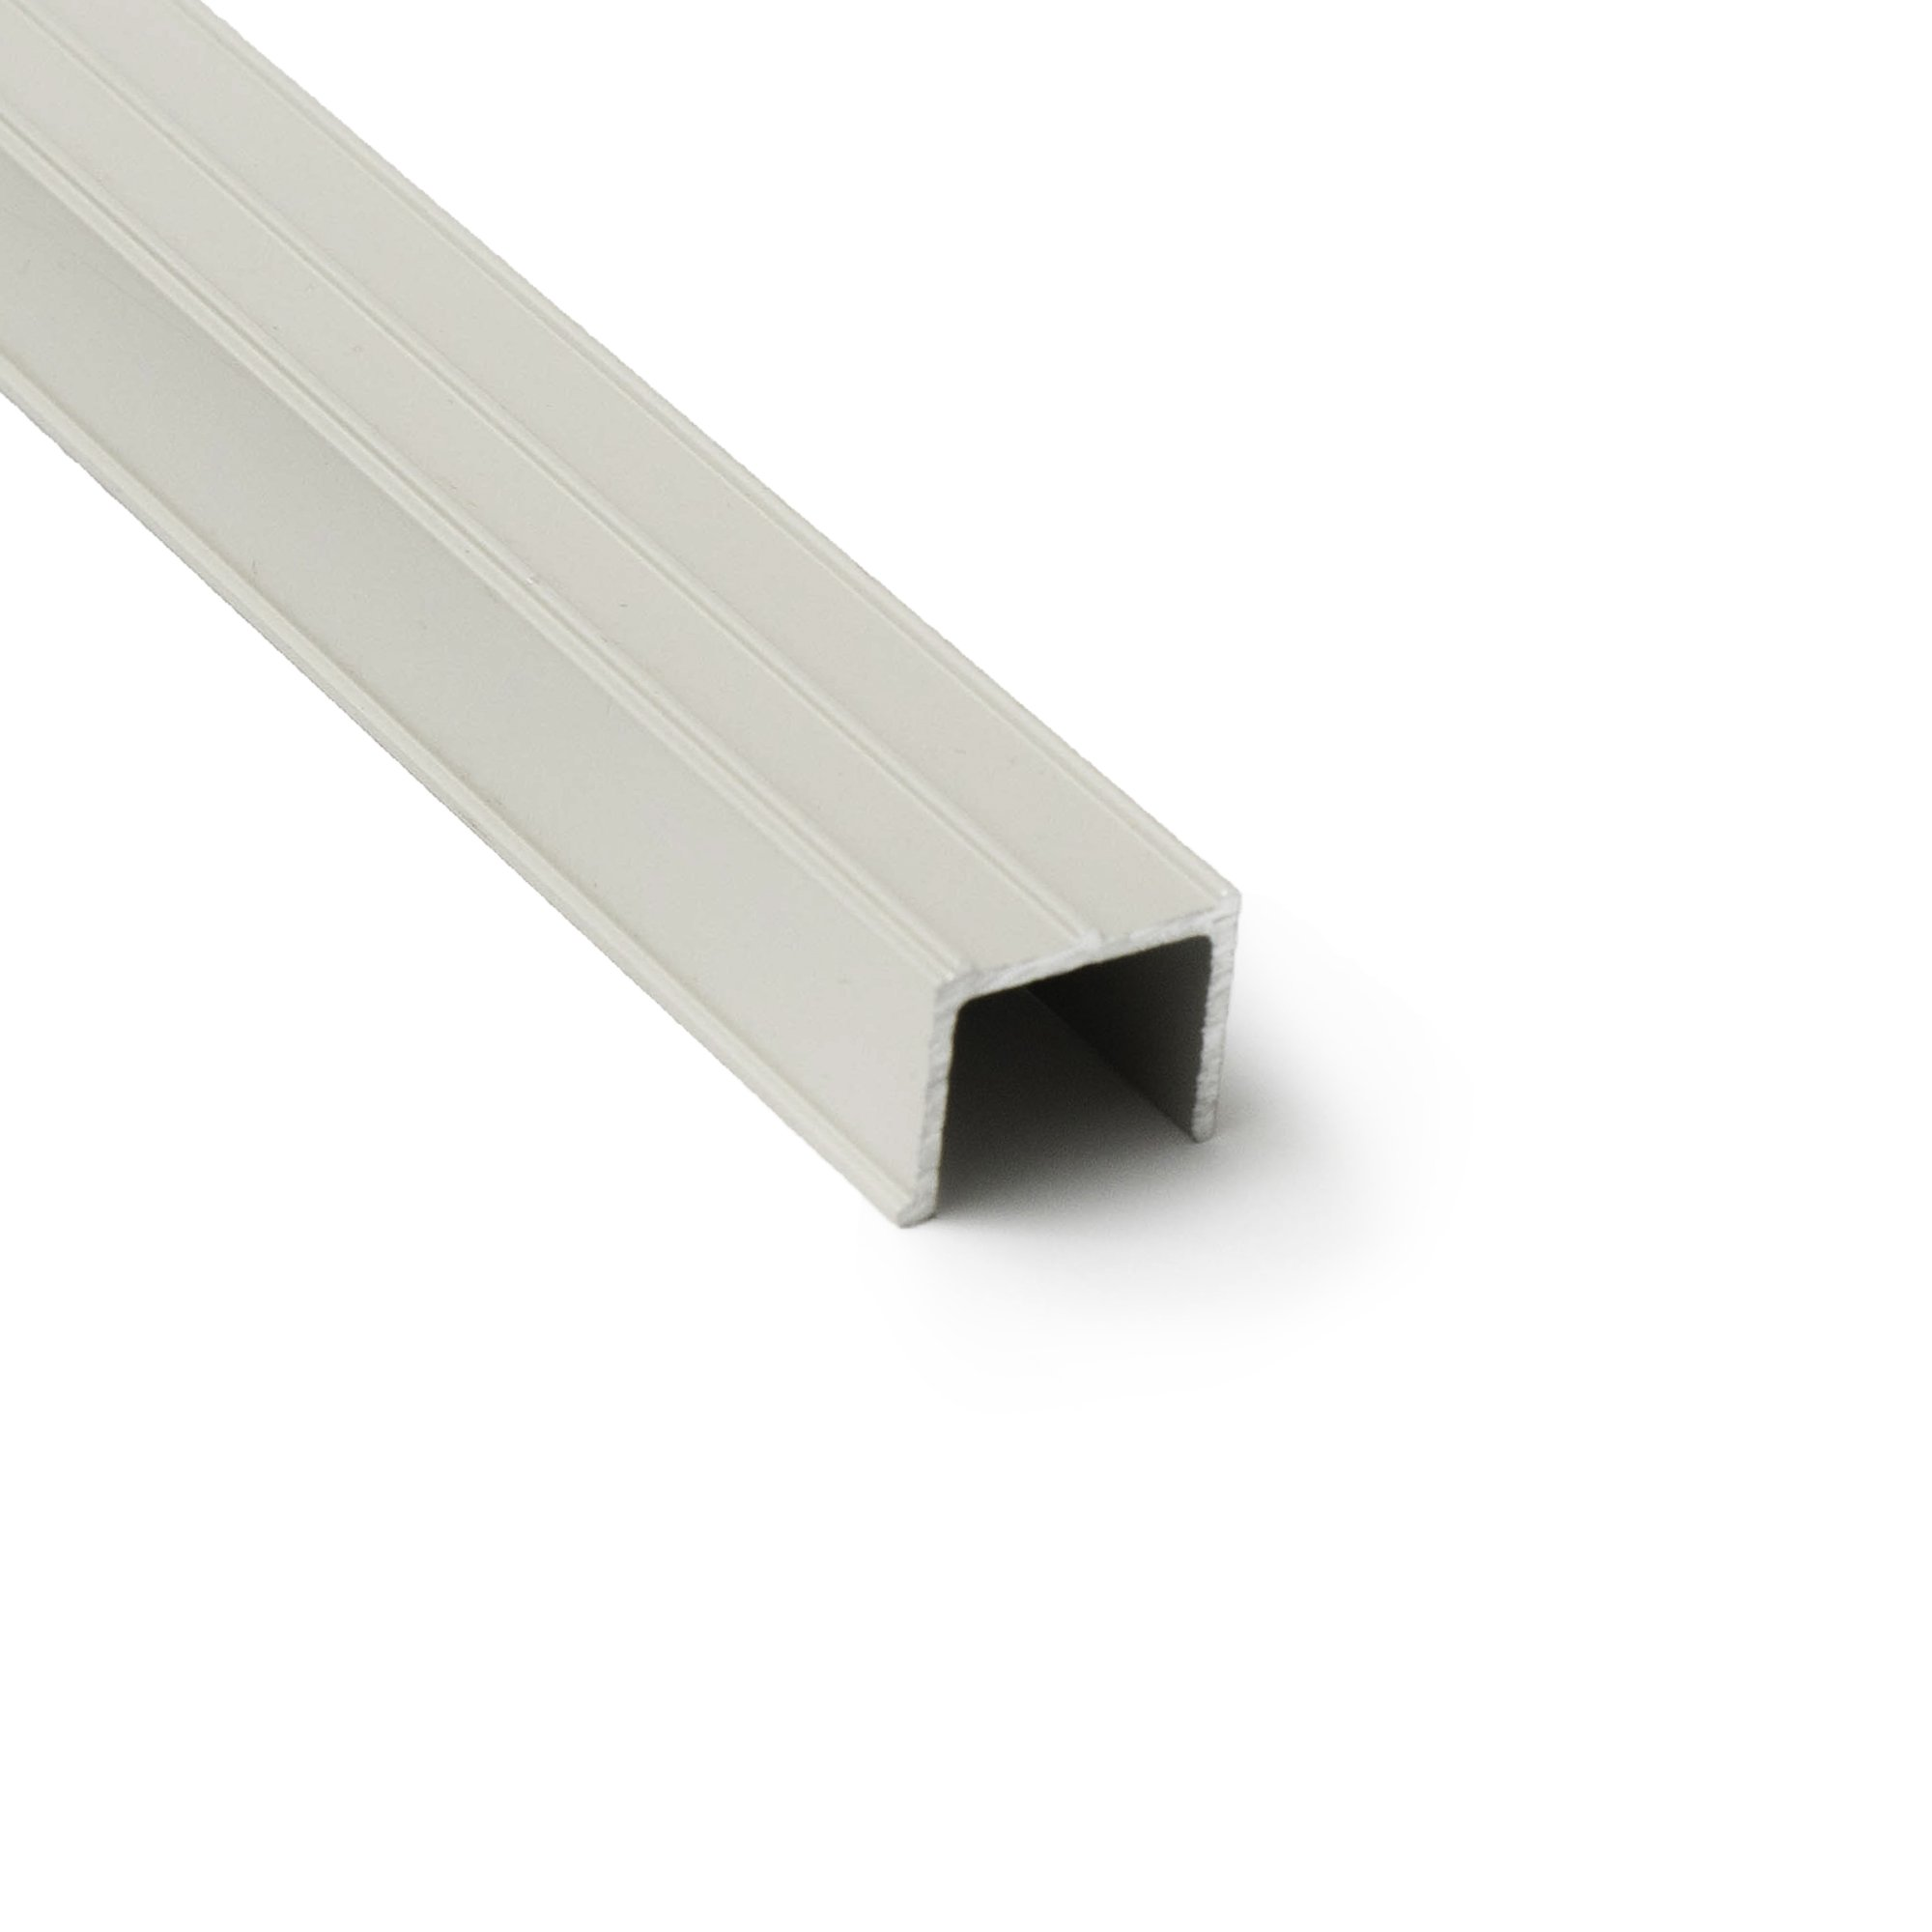 Sliding Screen Door Tracking - Side Jamb Channel (Almond)